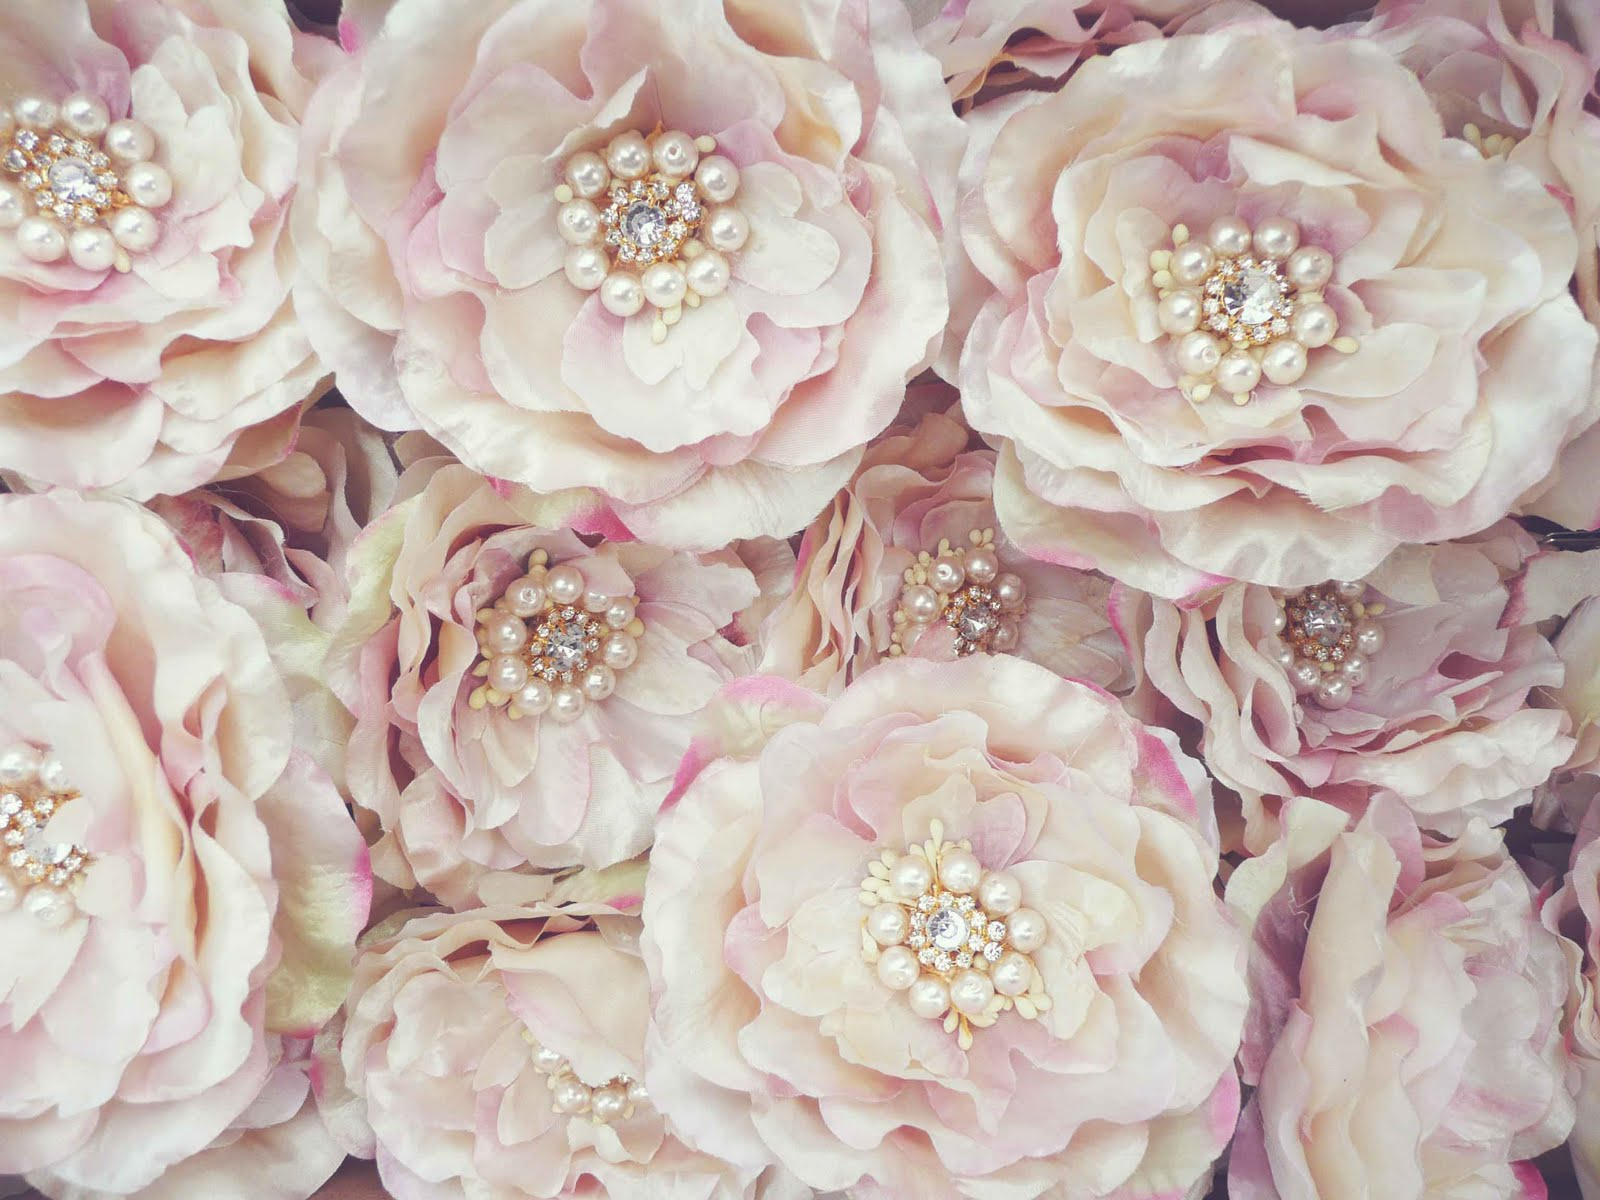 a angelou sister flowers thesis << coursework writing service a angelou sister flowers thesis